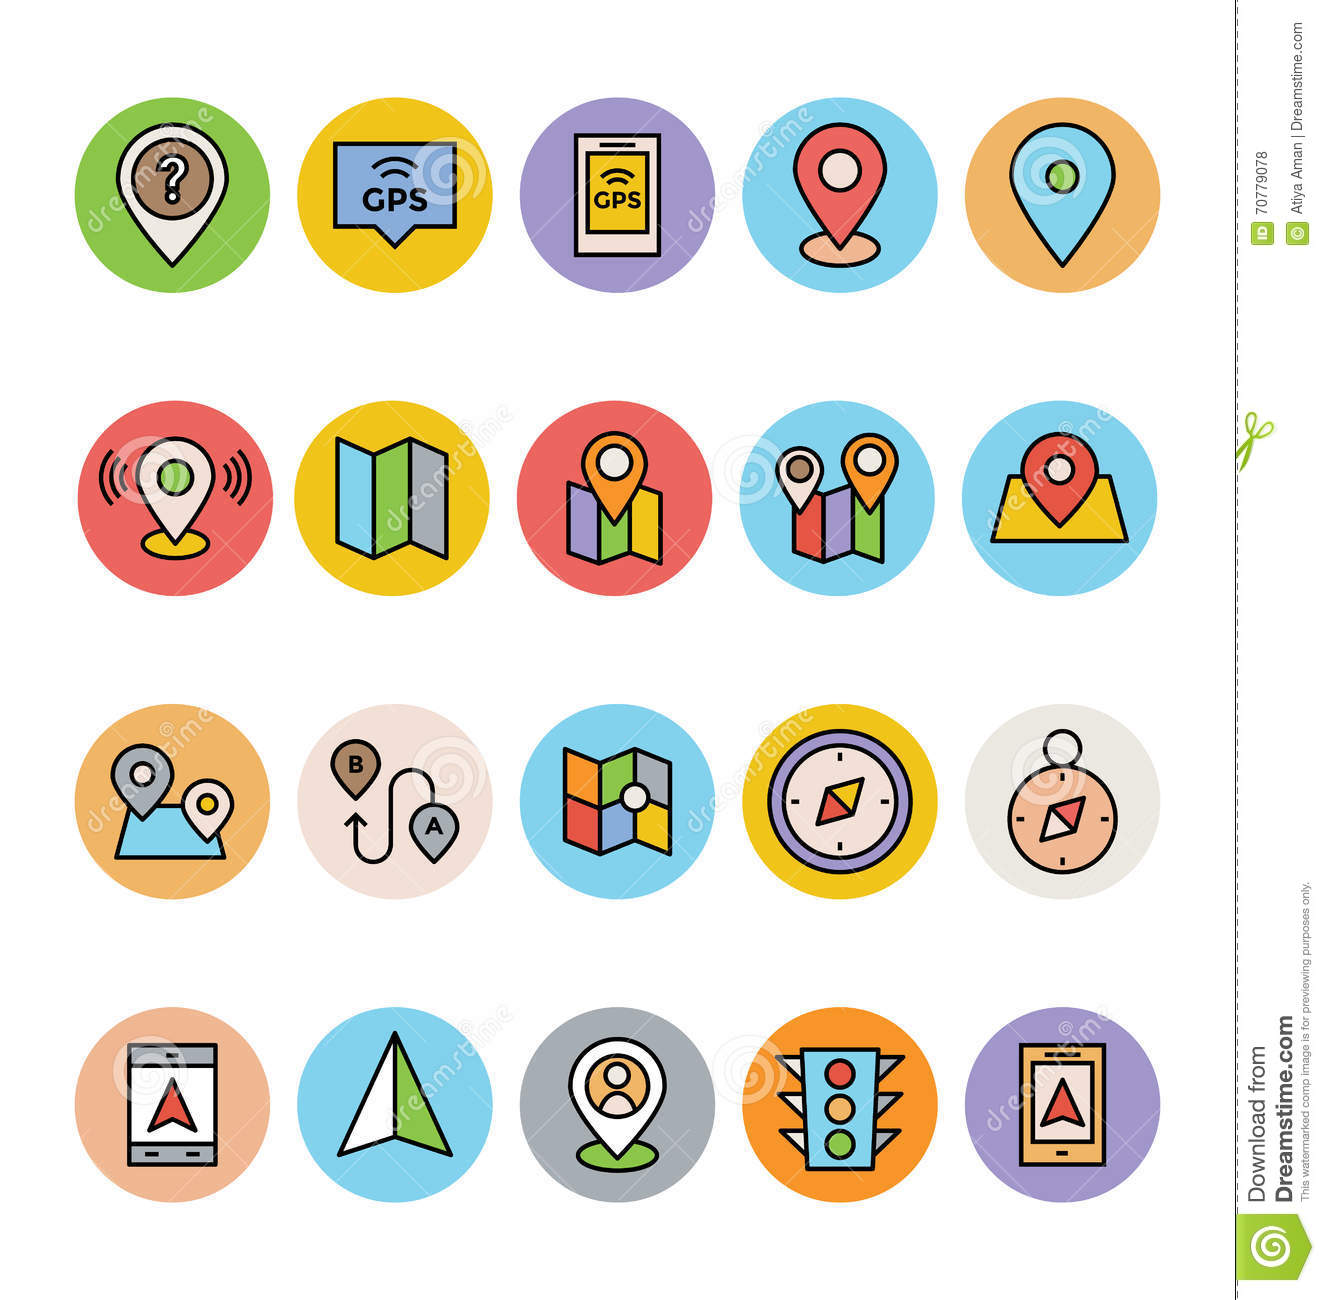 Map And Navigation Vector Icons 2 Stock Illustration ...